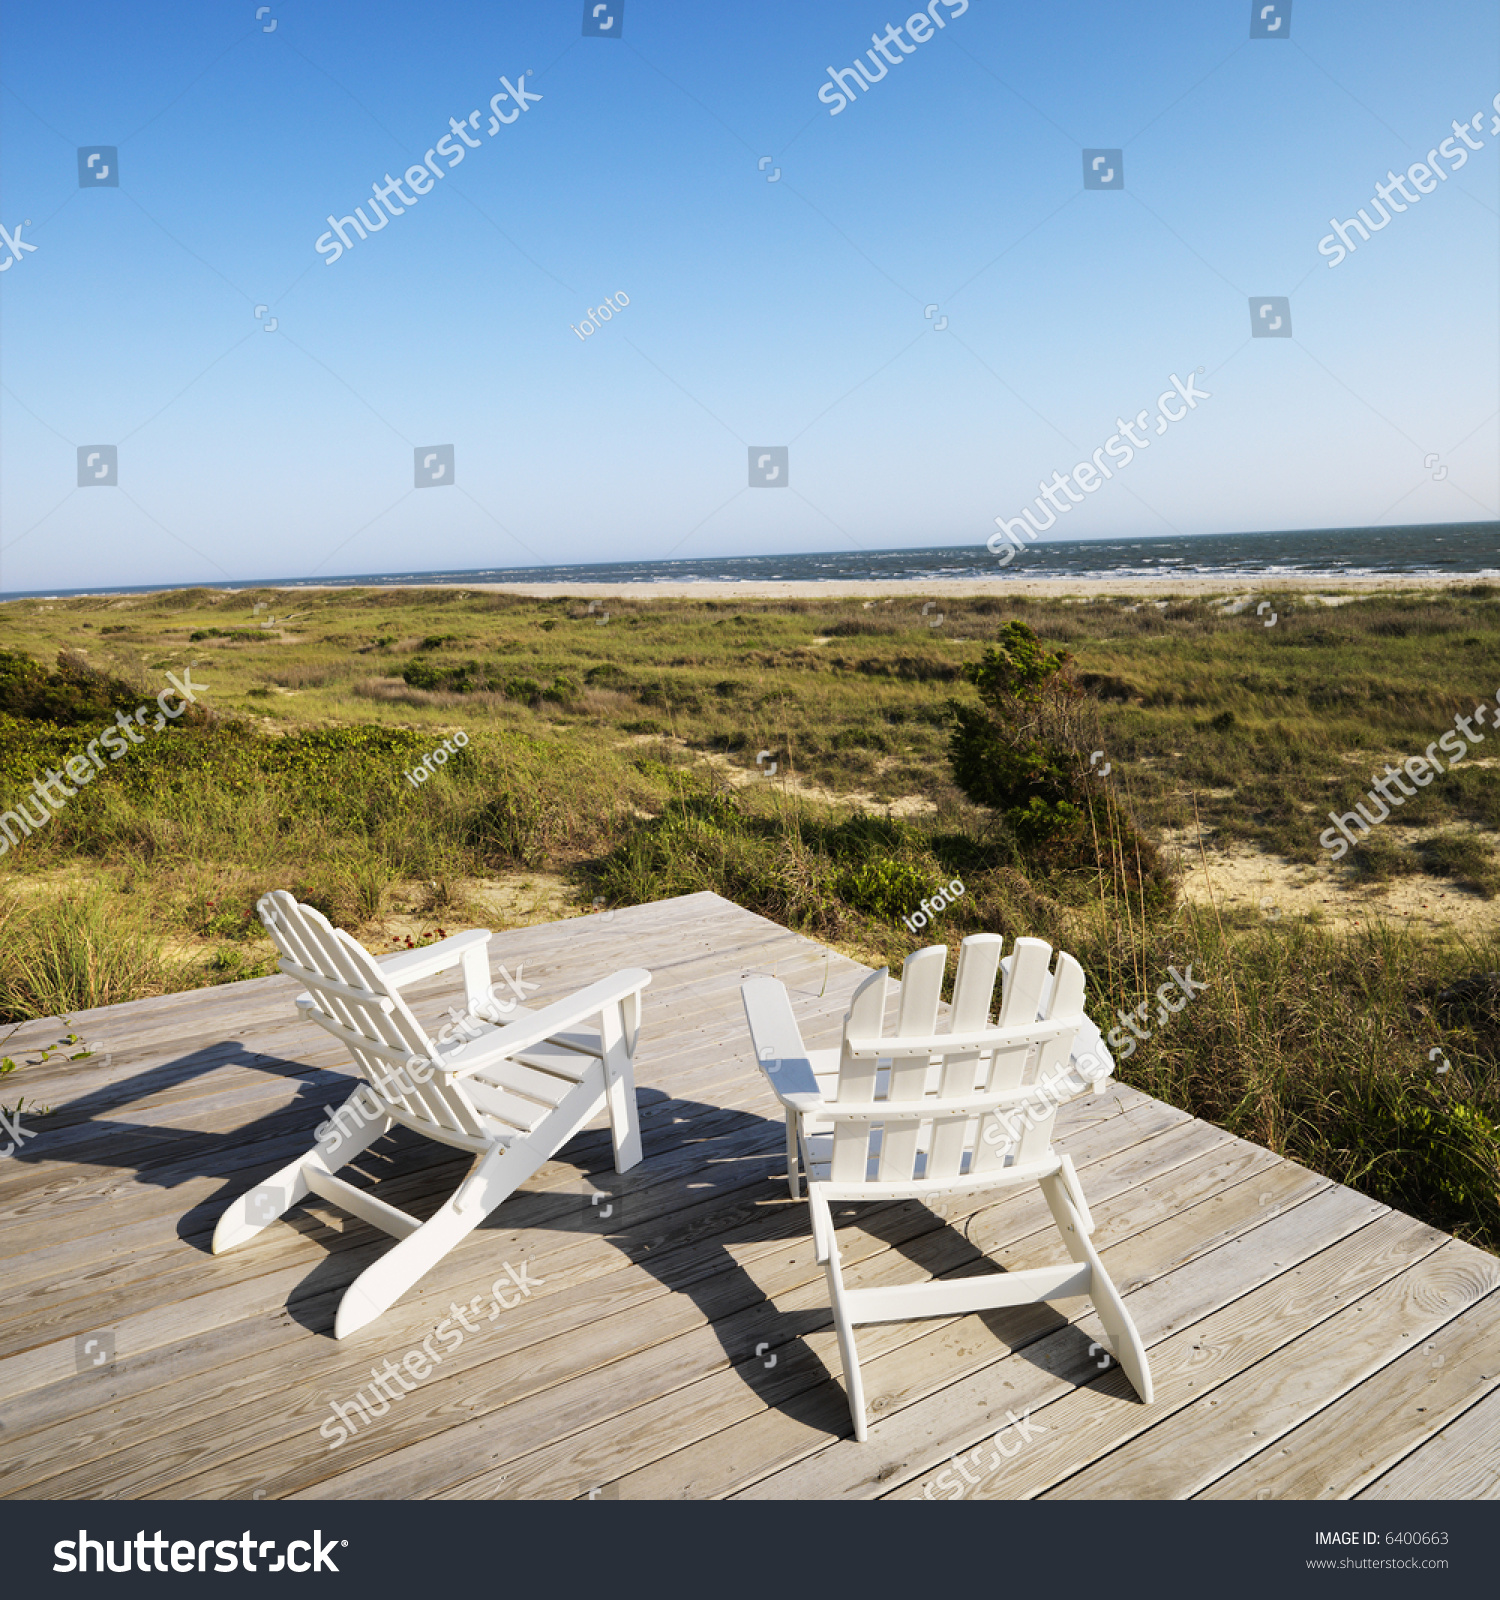 adirondack chairs on beach. Two Adirondack Chairs On Wooden Deck Overlooking Beach At Bald Head Island, North Carolina.